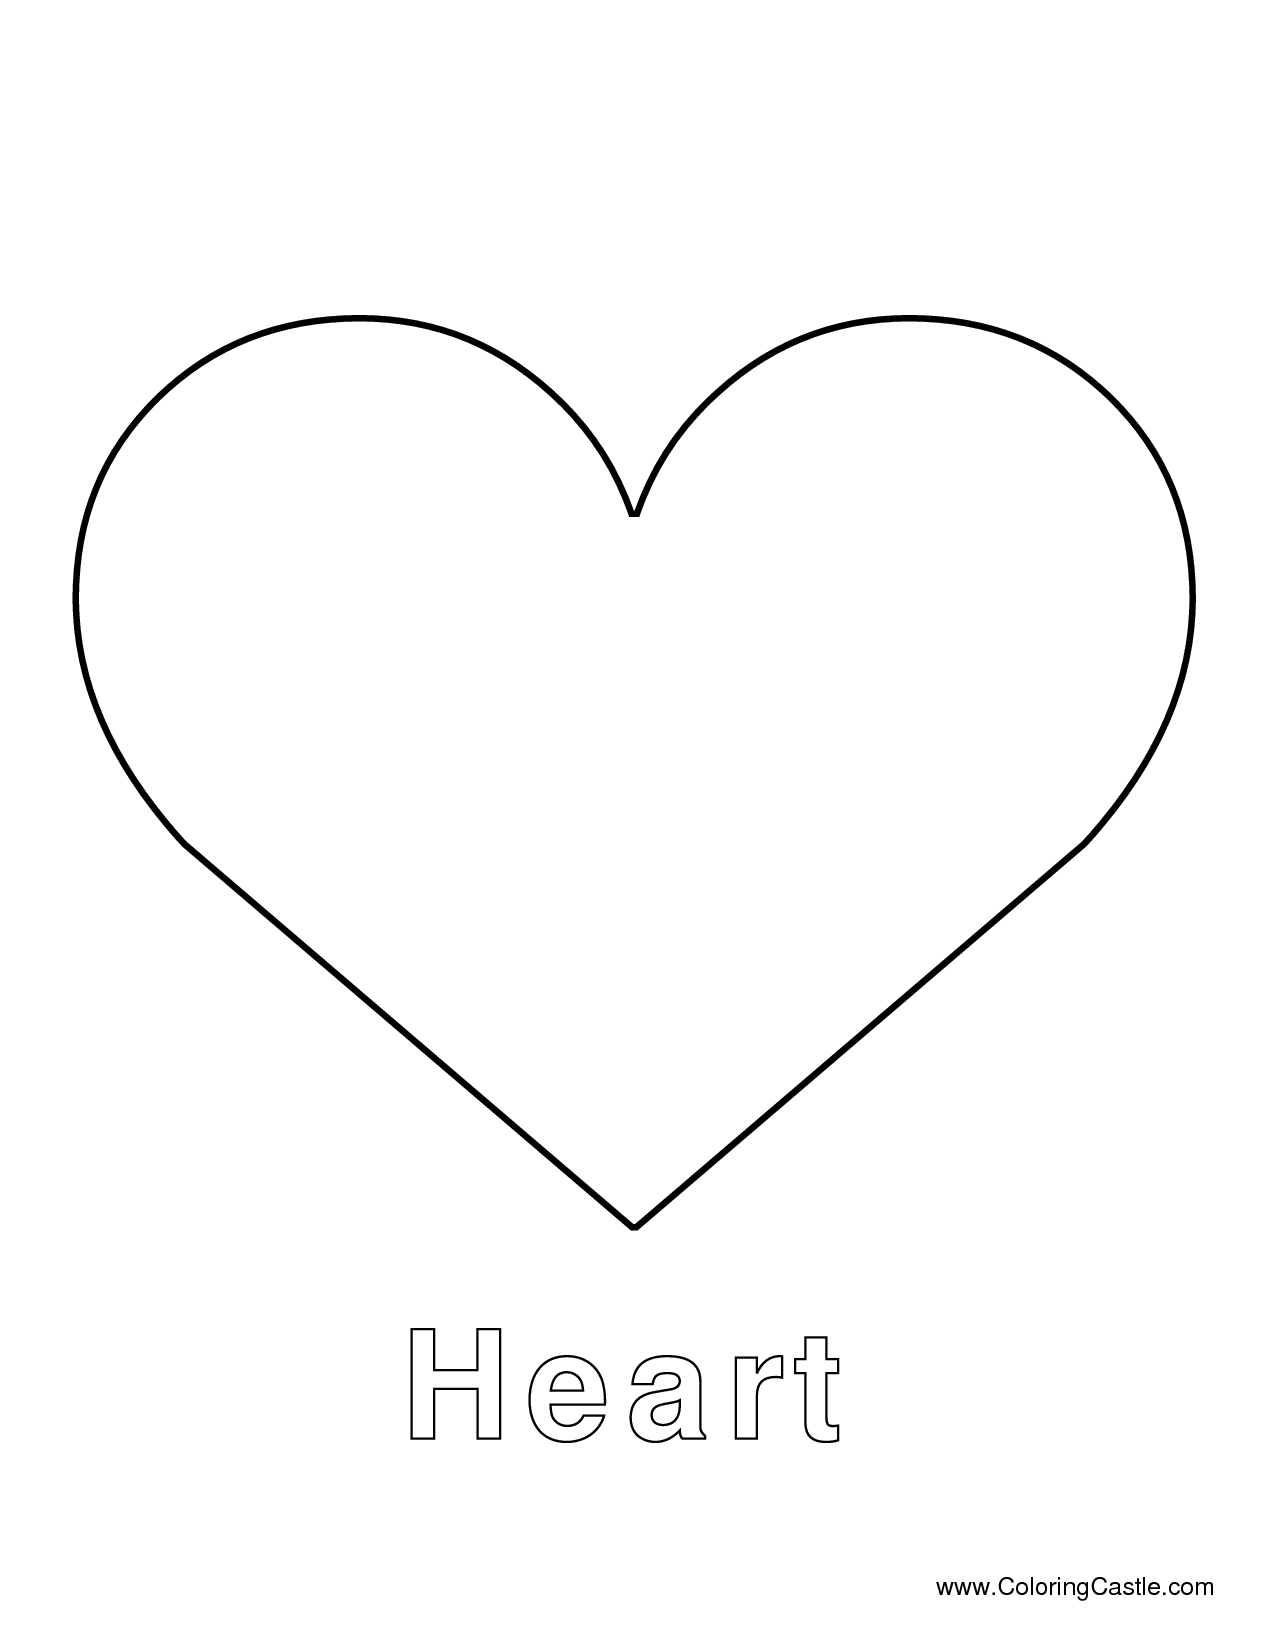 Heart Template- To Cut Out A Perfect Heart Or To Put Names In - Free Printable Heart Templates